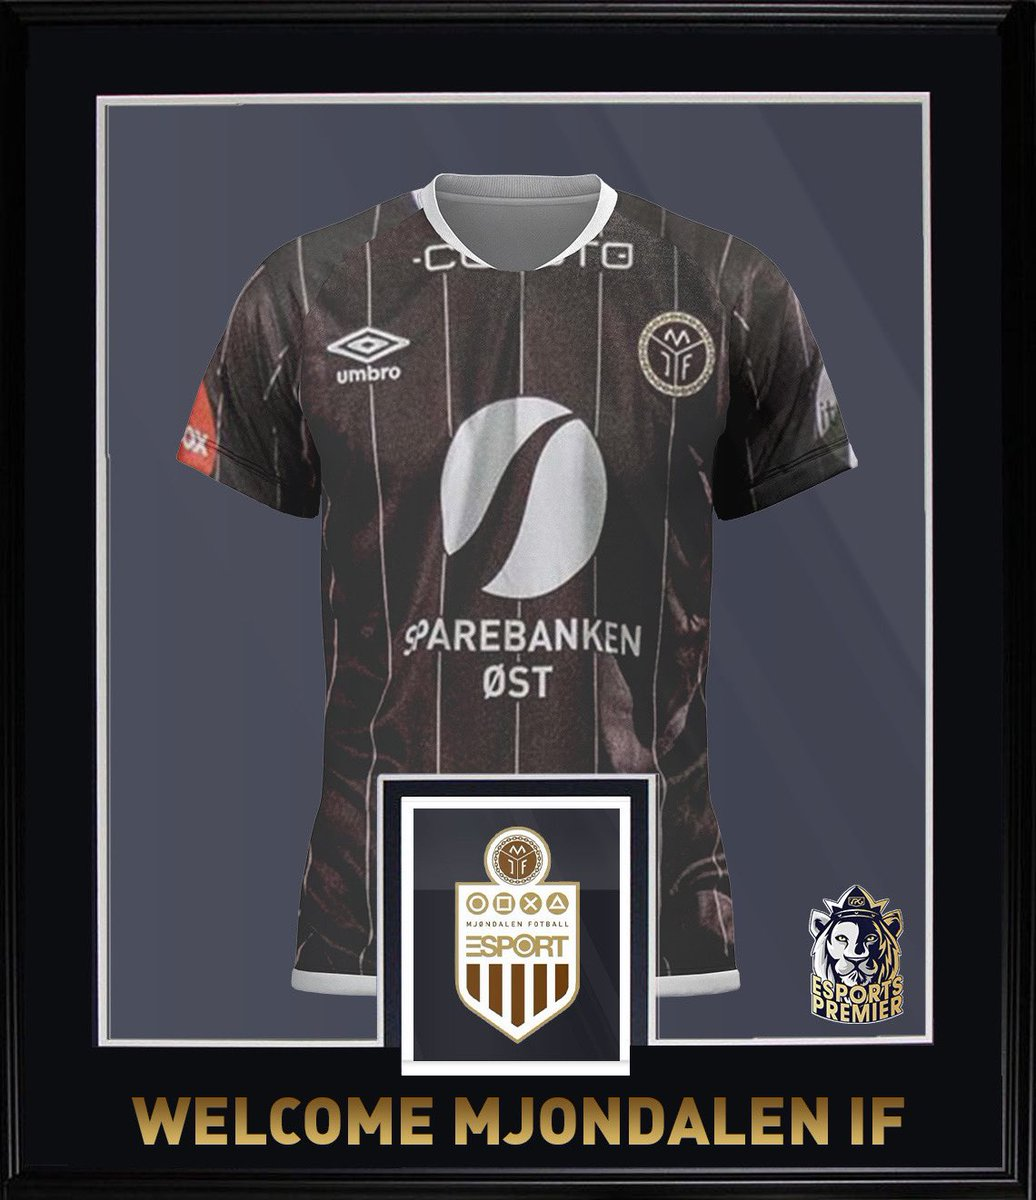 🤩 Welcome @MIFproclubs into the @VPGPremier !   🌍 Nationality: 🇳🇴   🏆 Ayoob a fantastic coach, will definitely be fighting for the title. Very experienced, hard working and ready to take every game!  #MIF #FIFA21 #ProClubs #VPG https://t.co/hsYNmXjPma